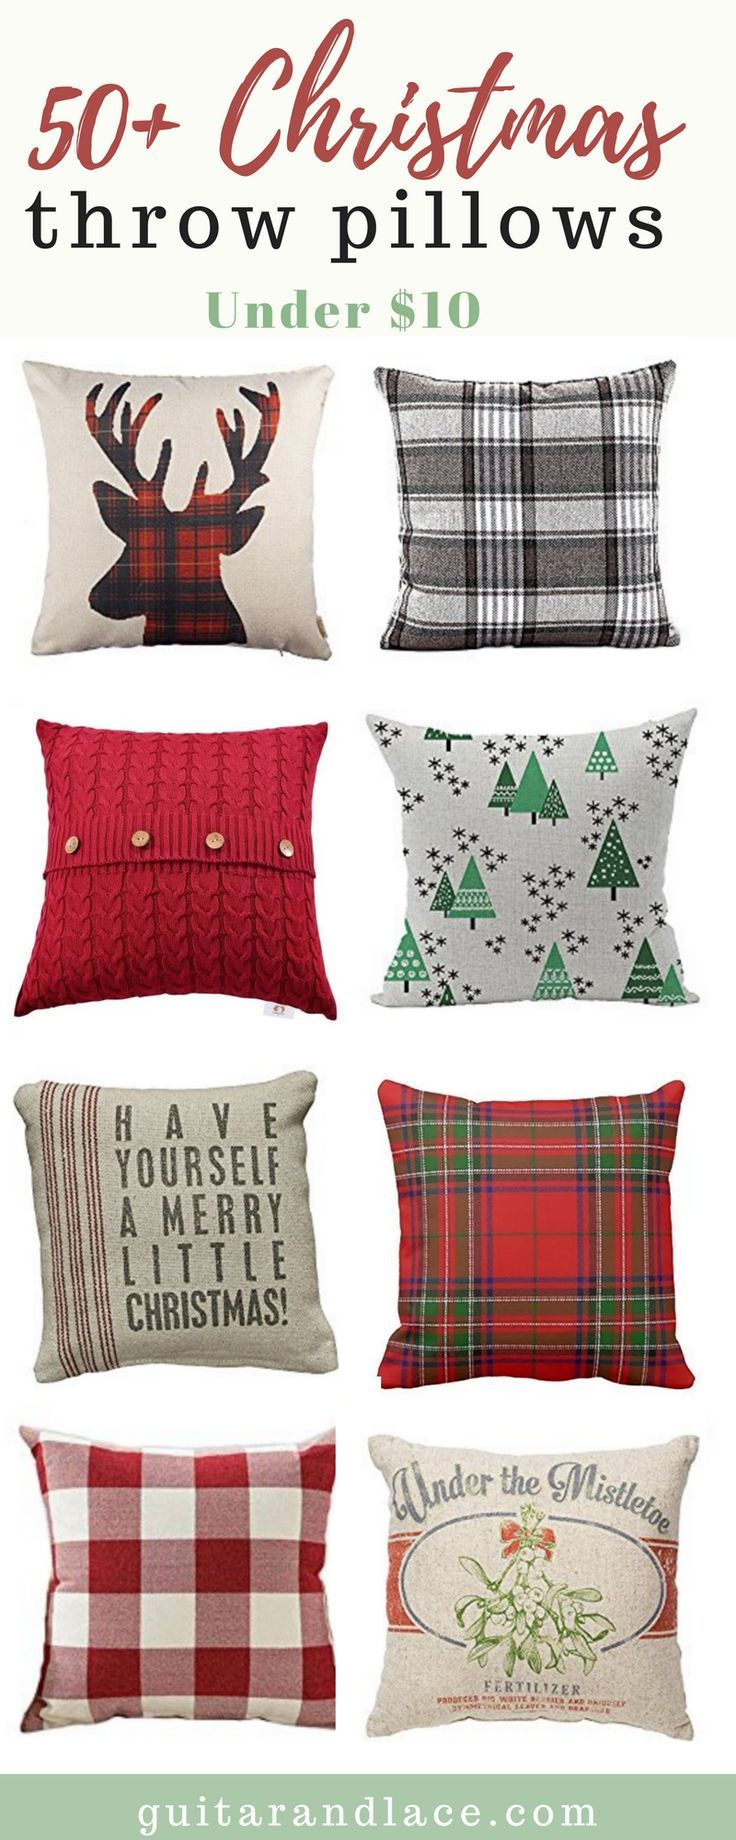 Cheap Decorative Pillows Under $10 Best Christmas Throw Pillow Shopping Guide  Hygge Christmas Farmhouse 2018